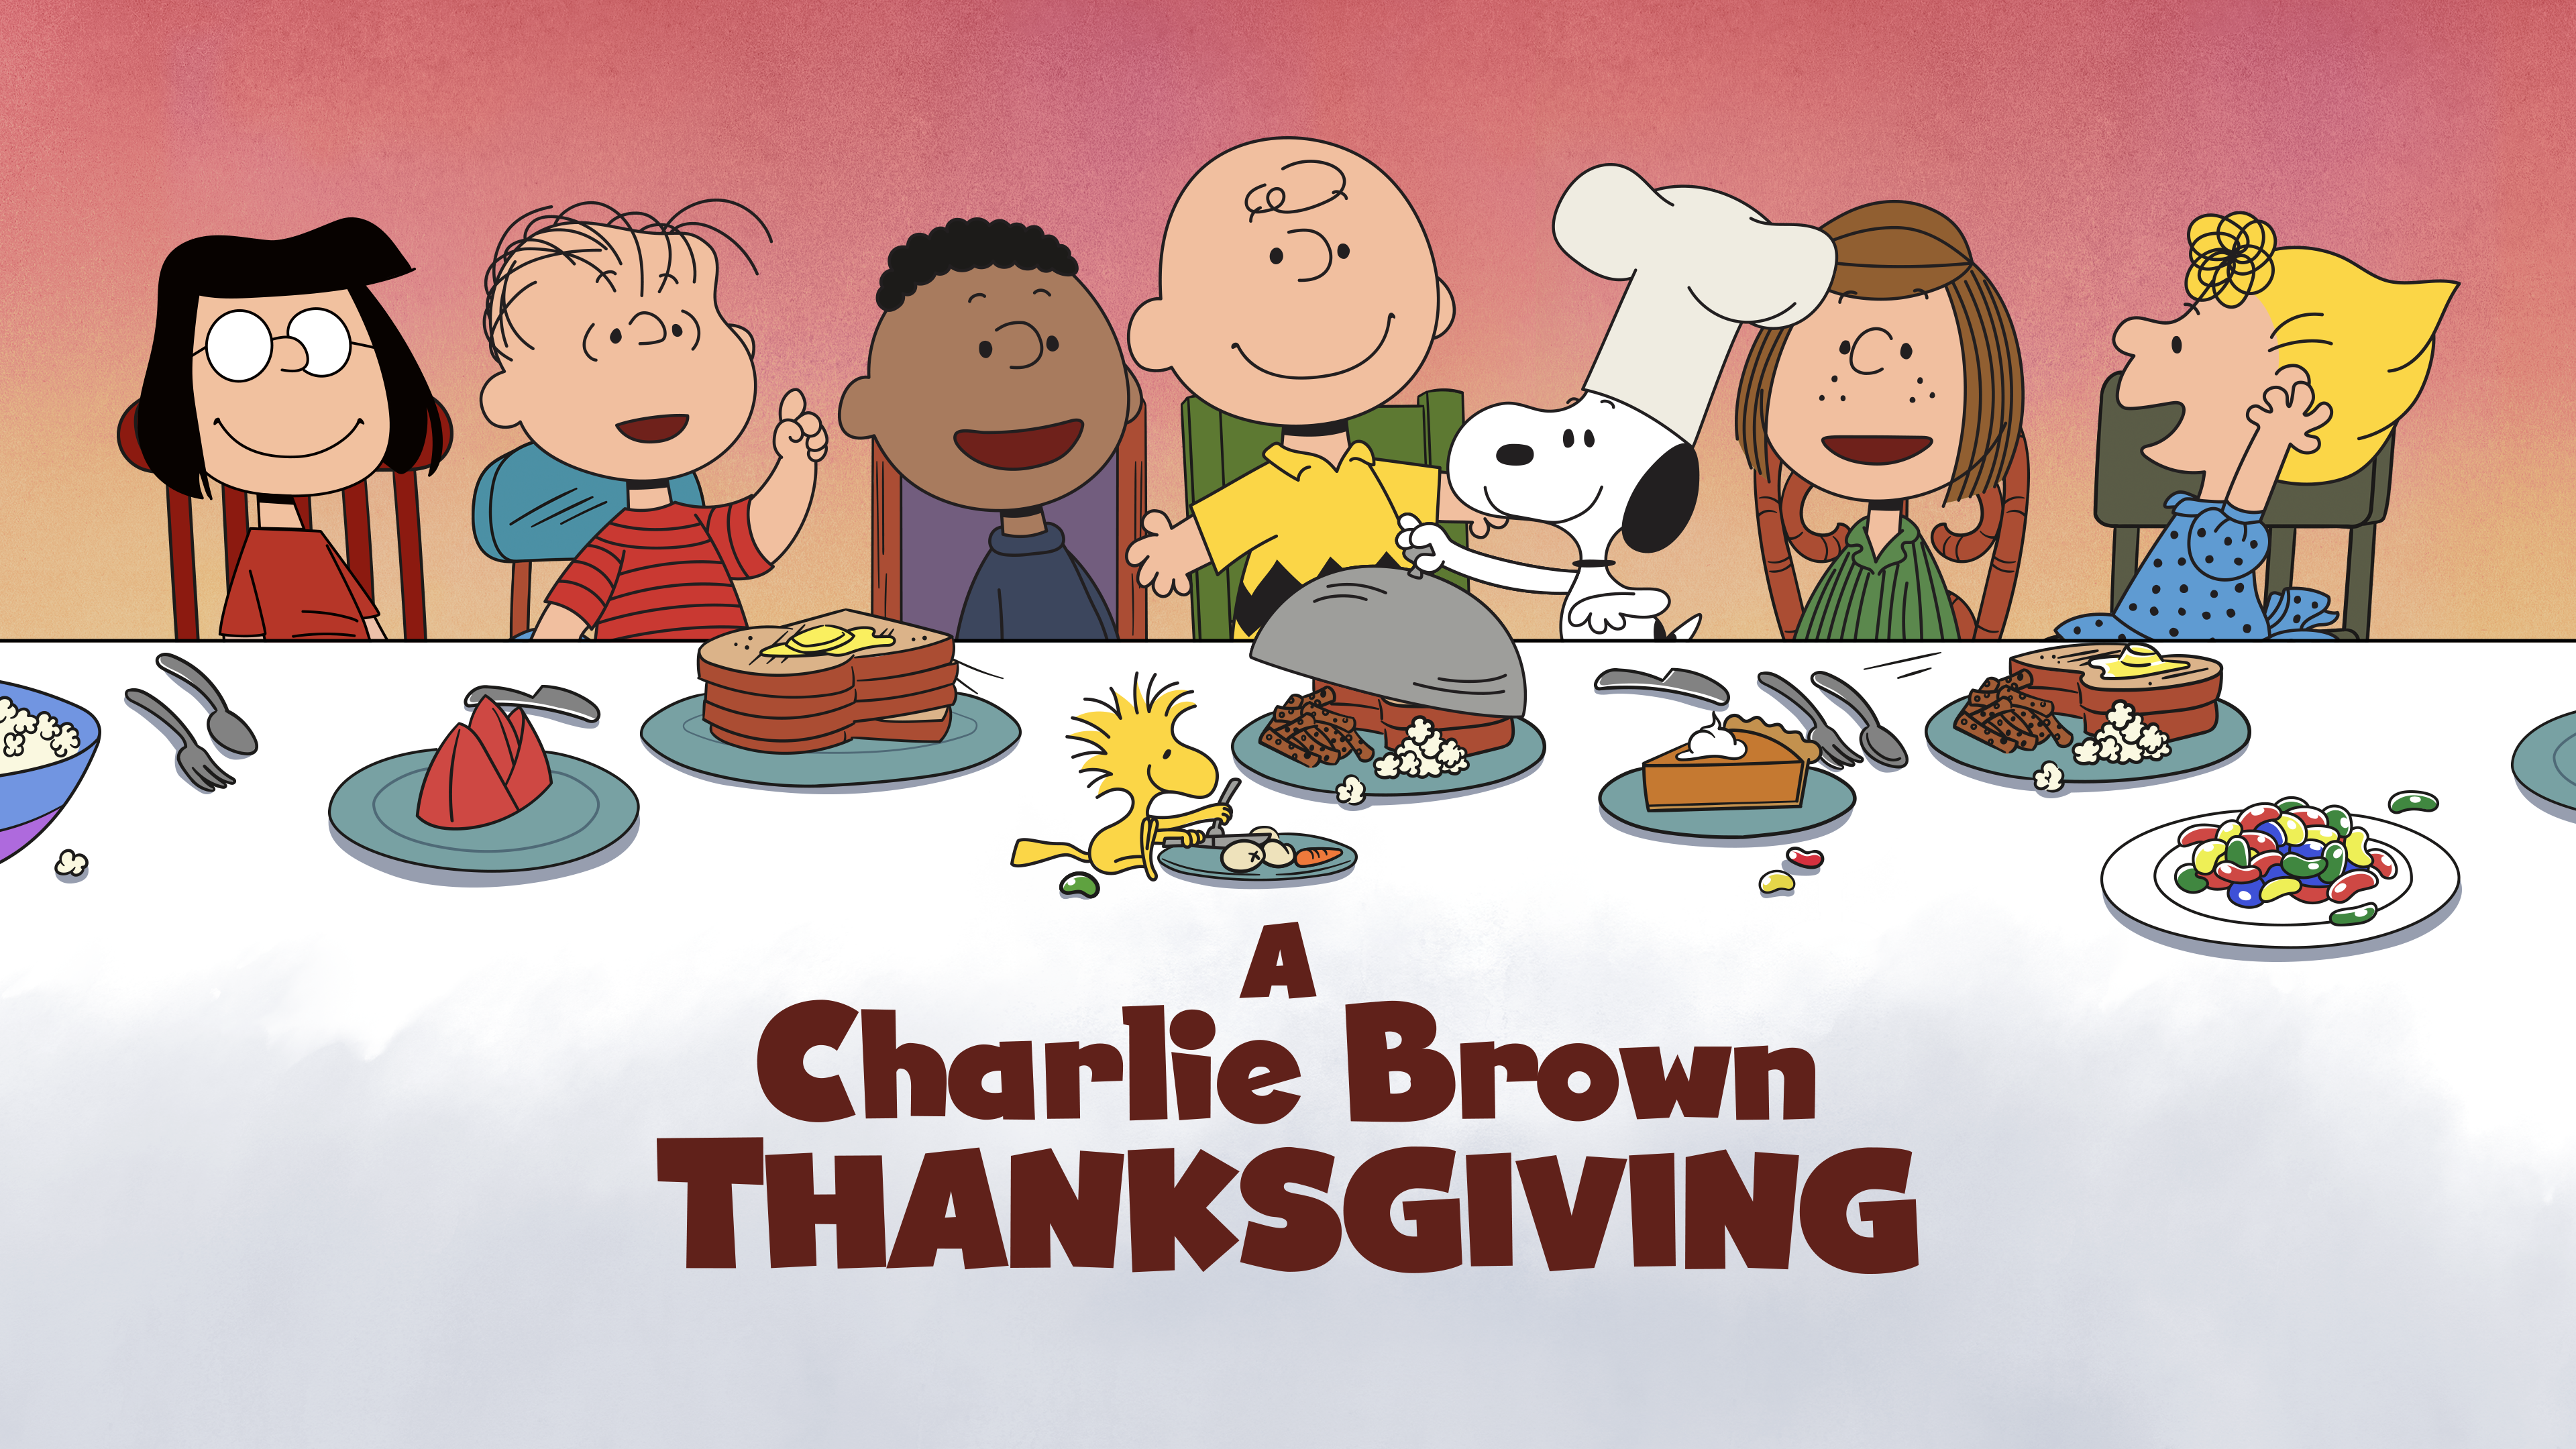 After outcry and viral petition, Charlie Brown holiday specials get broadcast airing on PBS